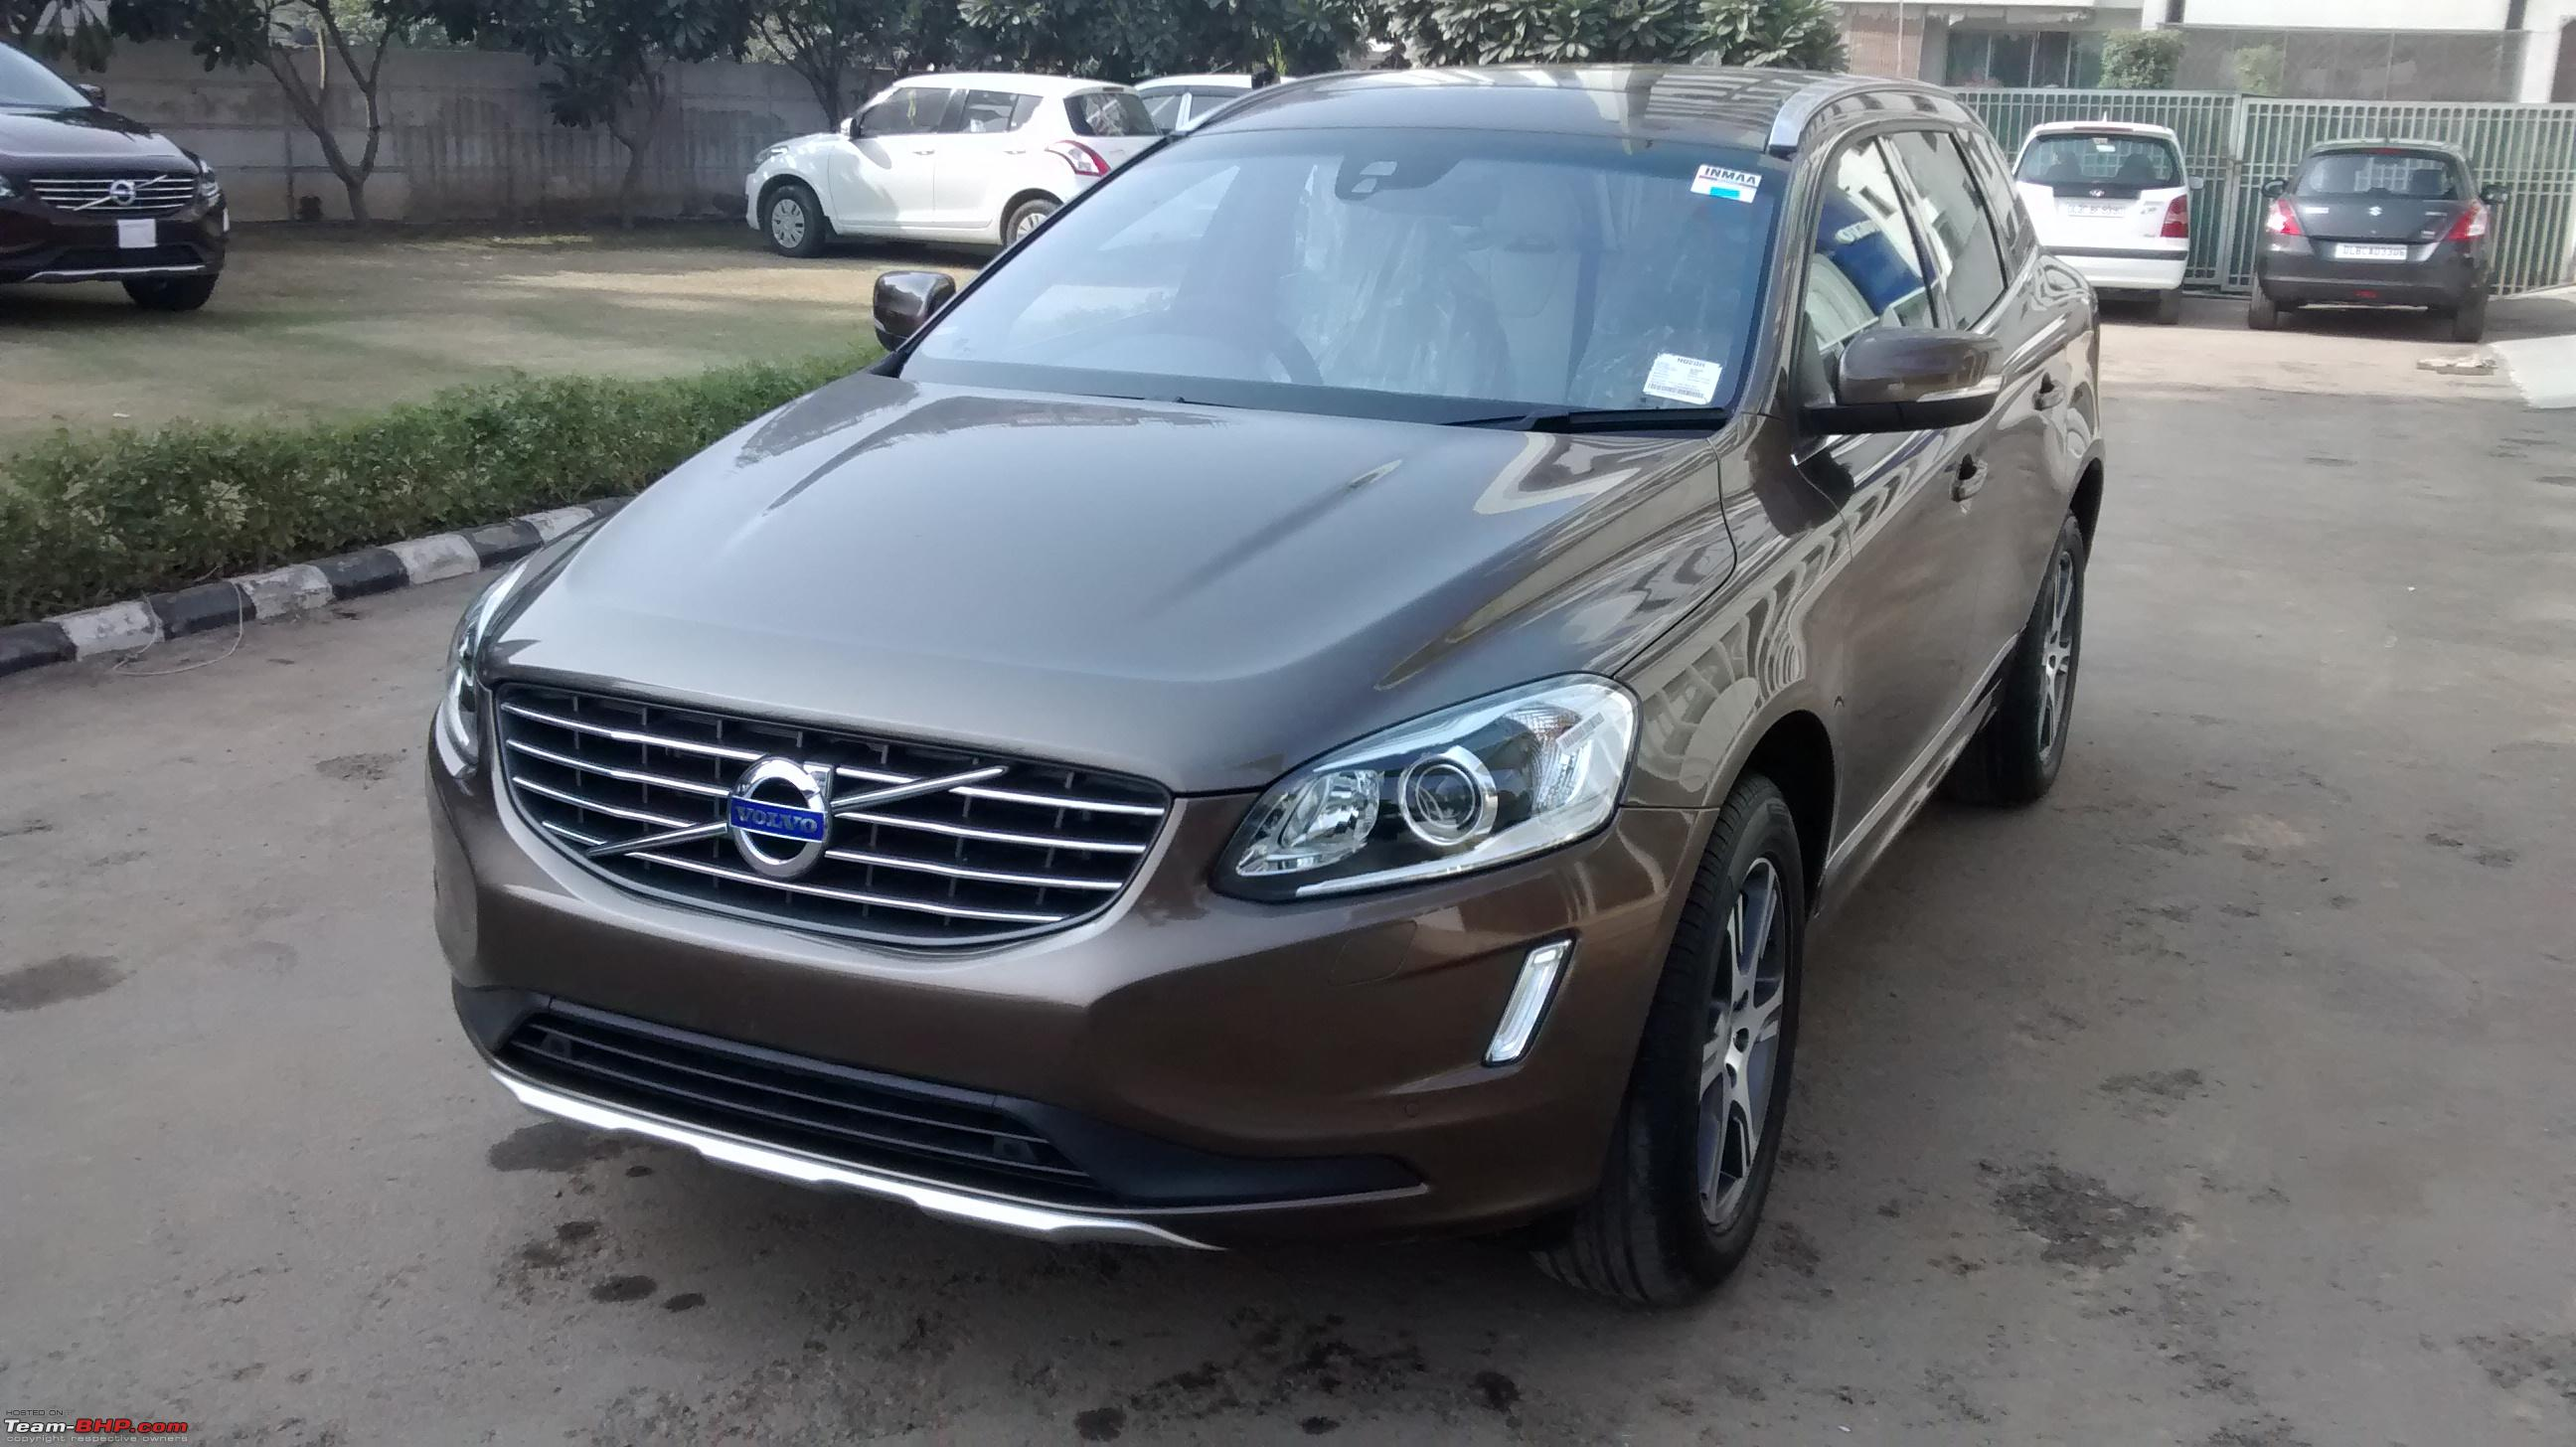 volvo xc60 d5 summum awd edit 30 000 km update page 6 team bhp. Black Bedroom Furniture Sets. Home Design Ideas